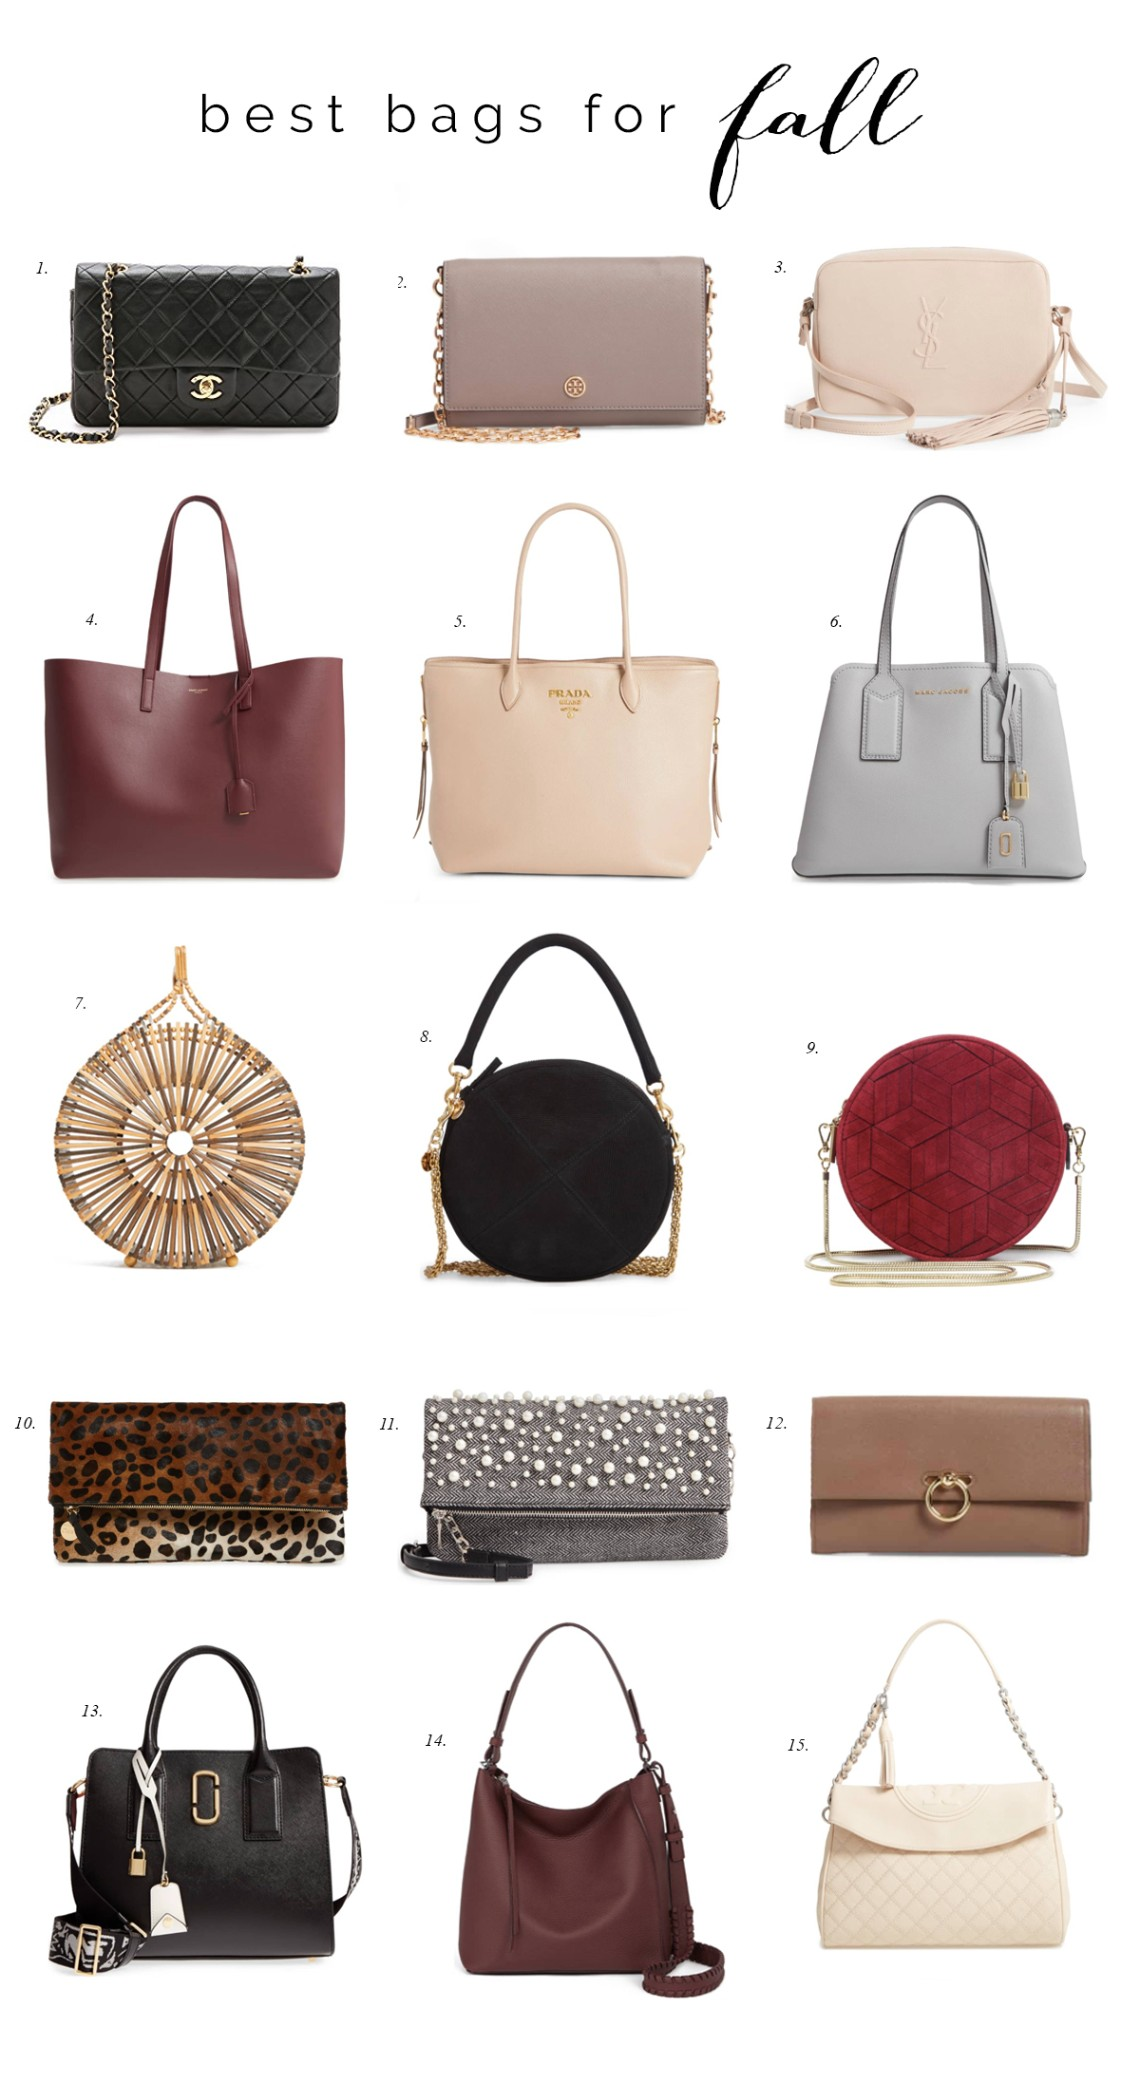 eca6a5e1f Friday Faves: 15 Best Bags For Fall | Style Elixir | Bloglovin'